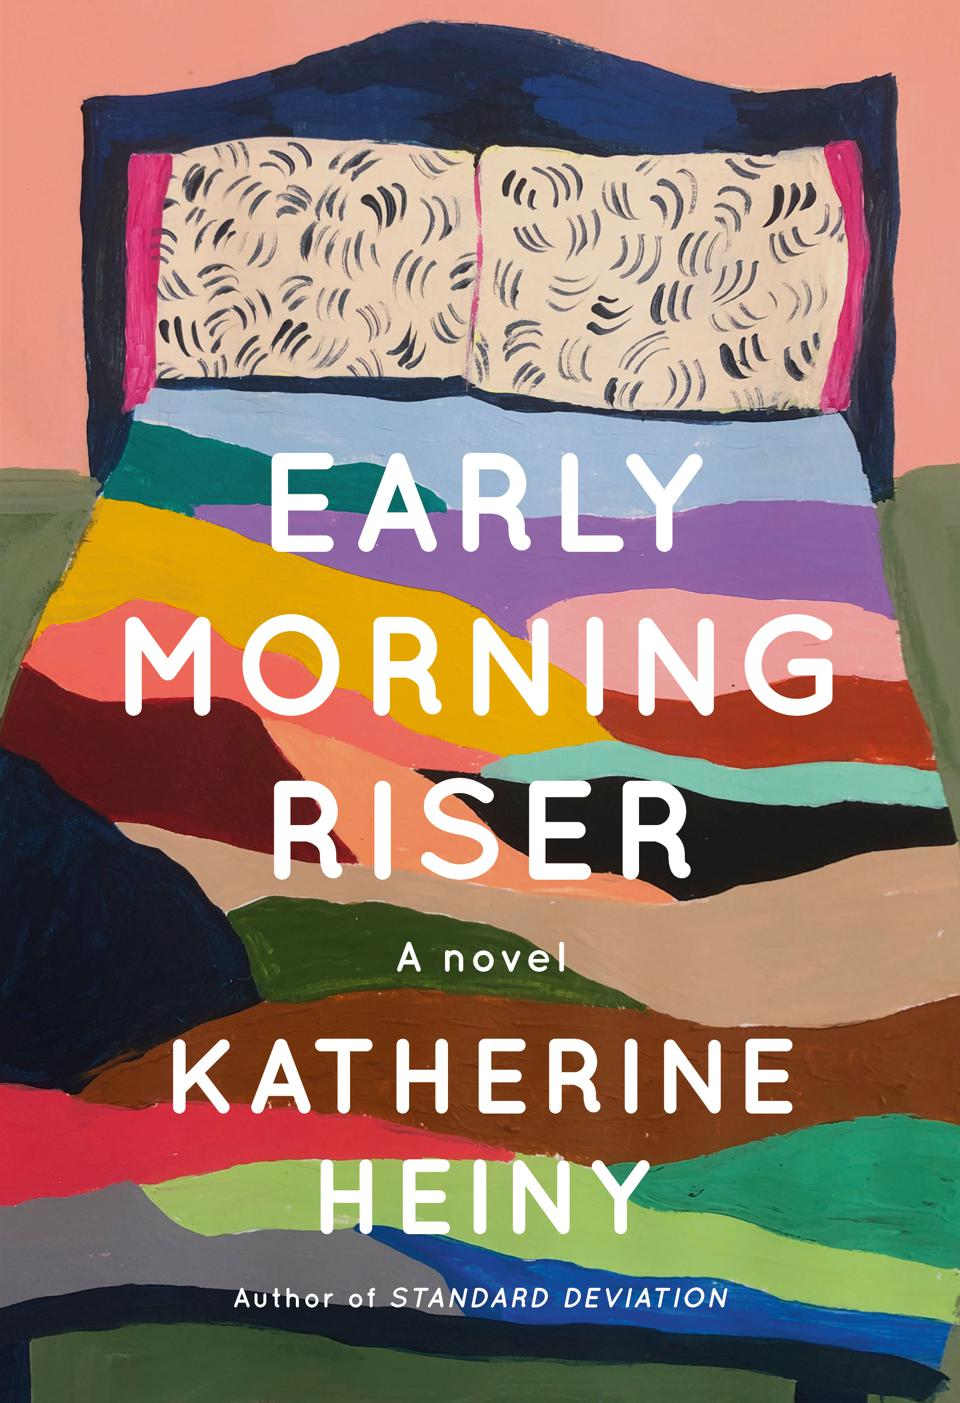 early morning riser katherine heiny novel fiction book cover knopf